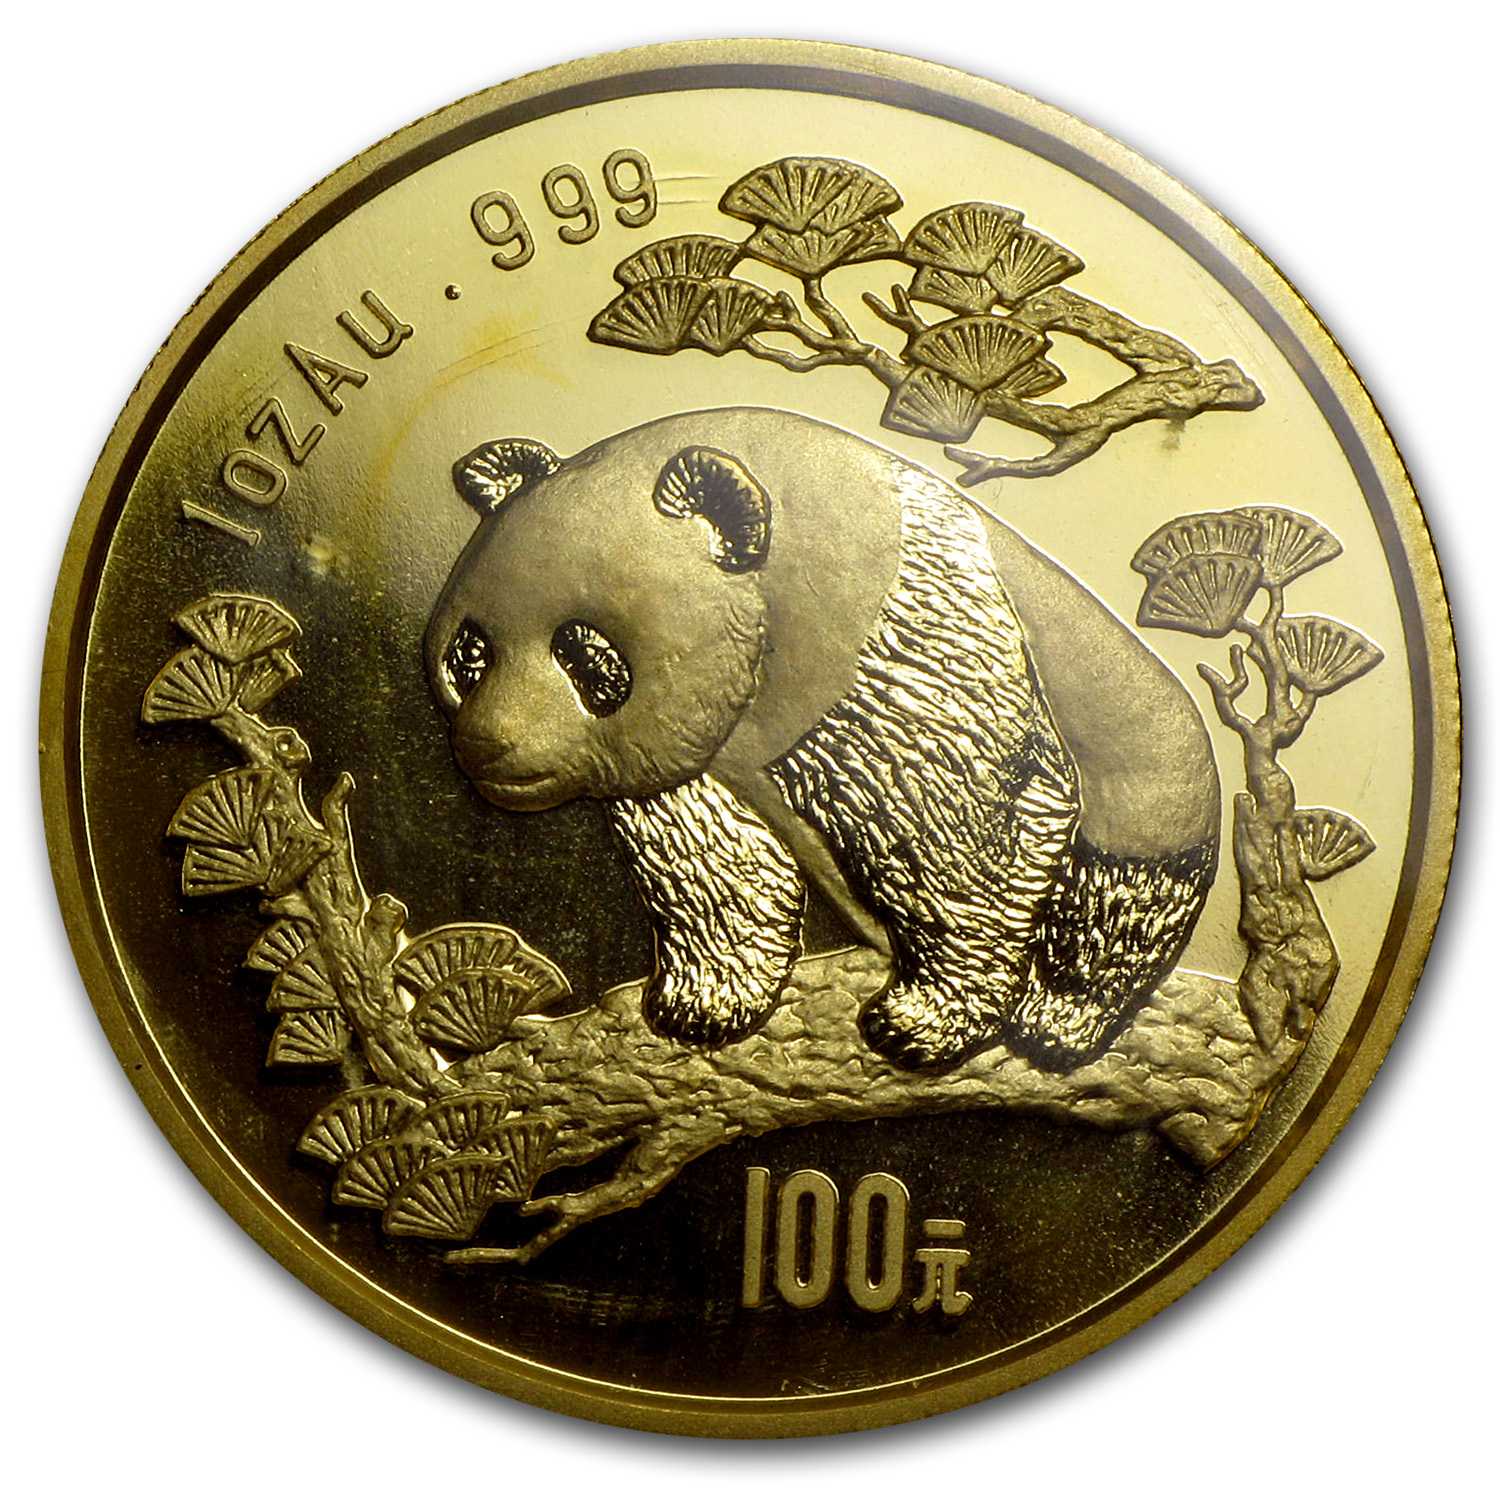 1997 China 1 oz Gold Panda Large Date BU (Sealed)